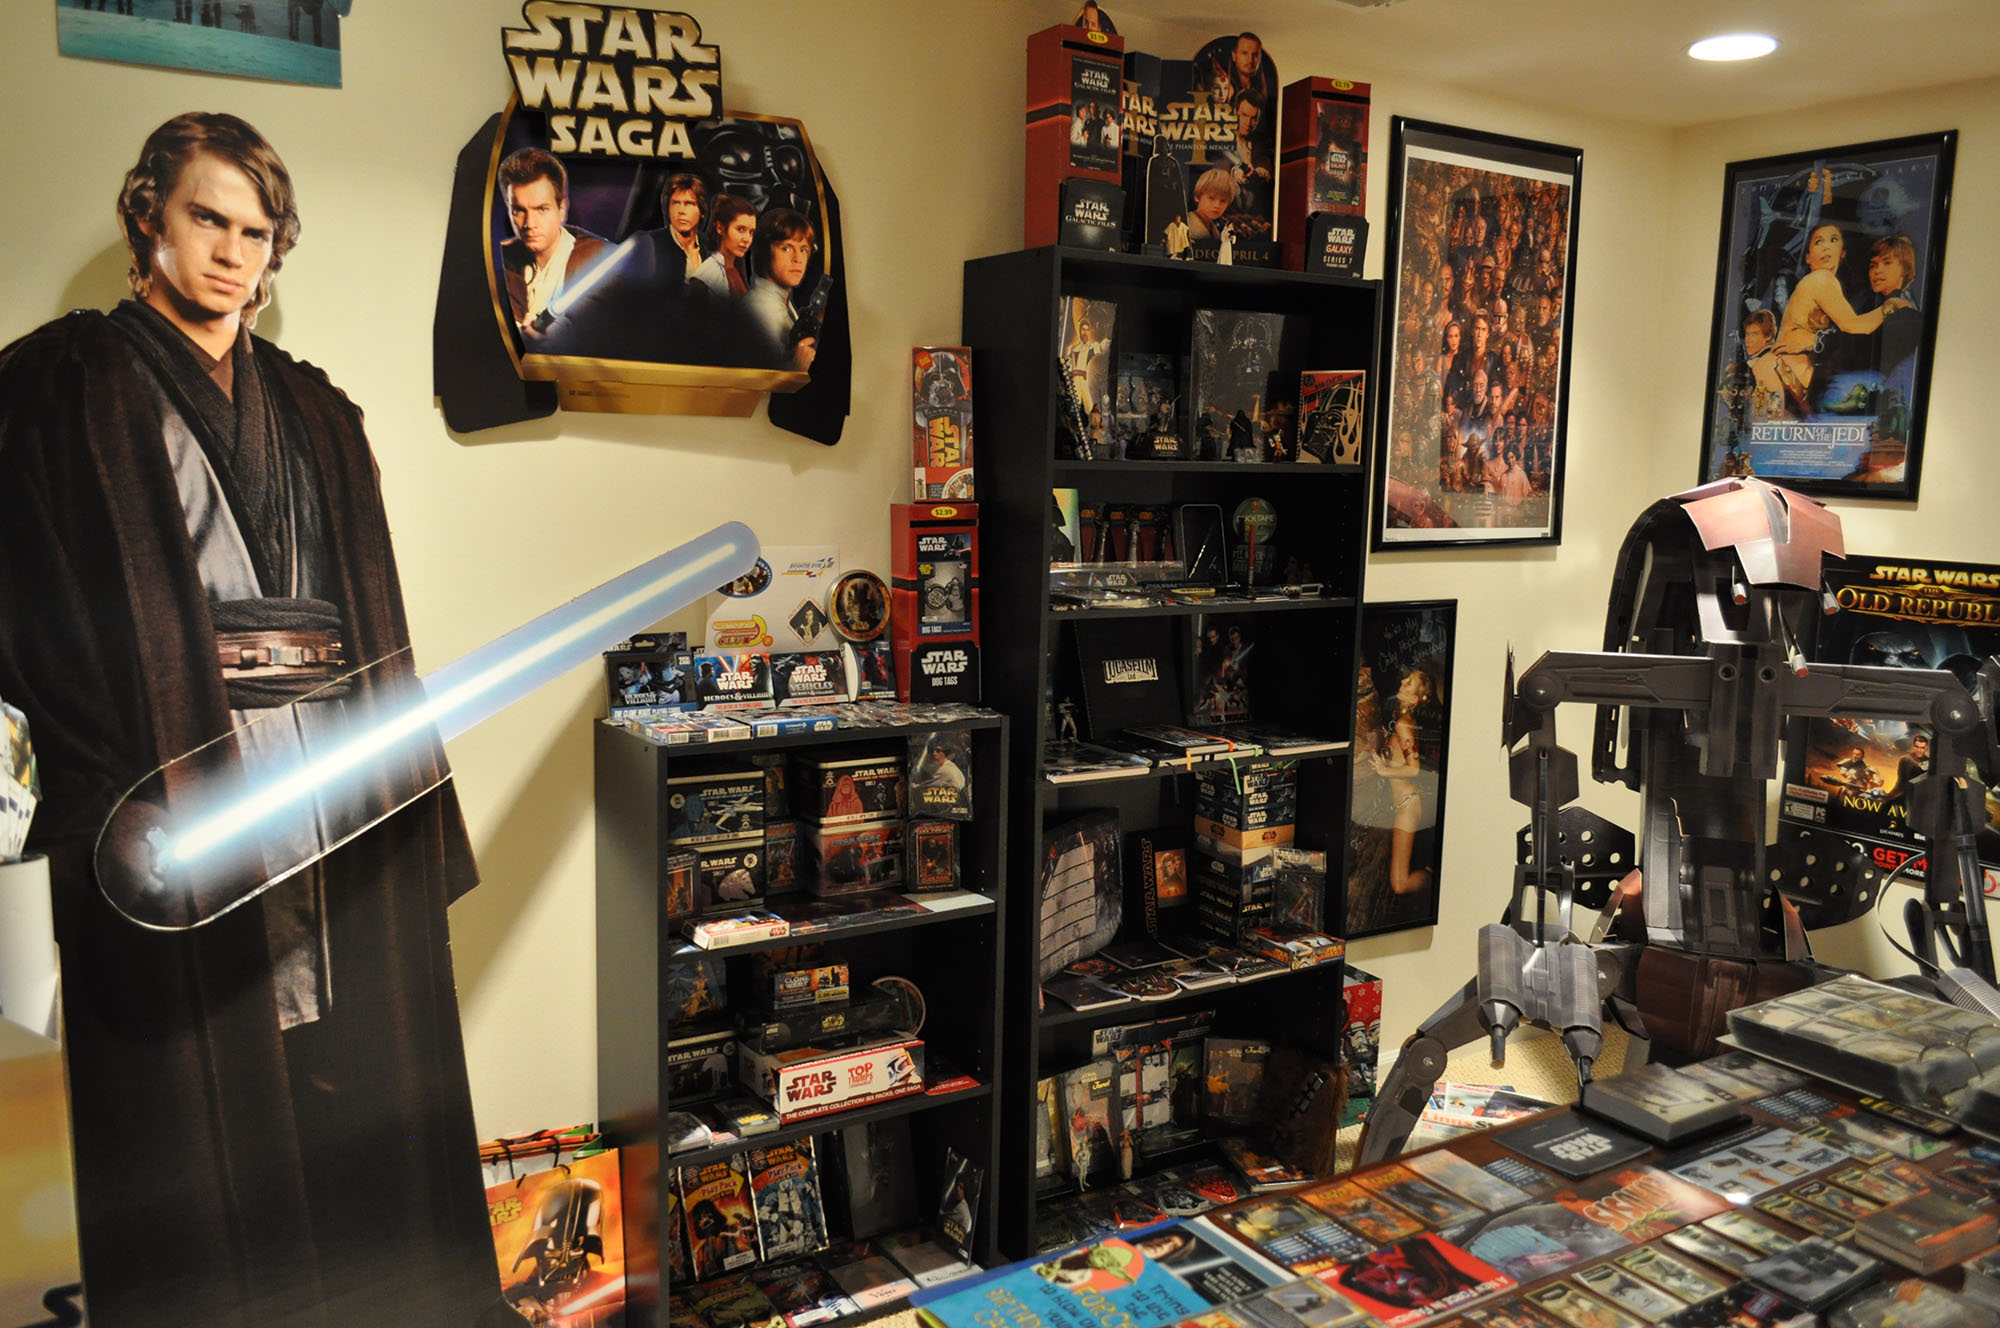 Star Wars House Items Fully Operational Fandom The Star Wars Collector Within Us All